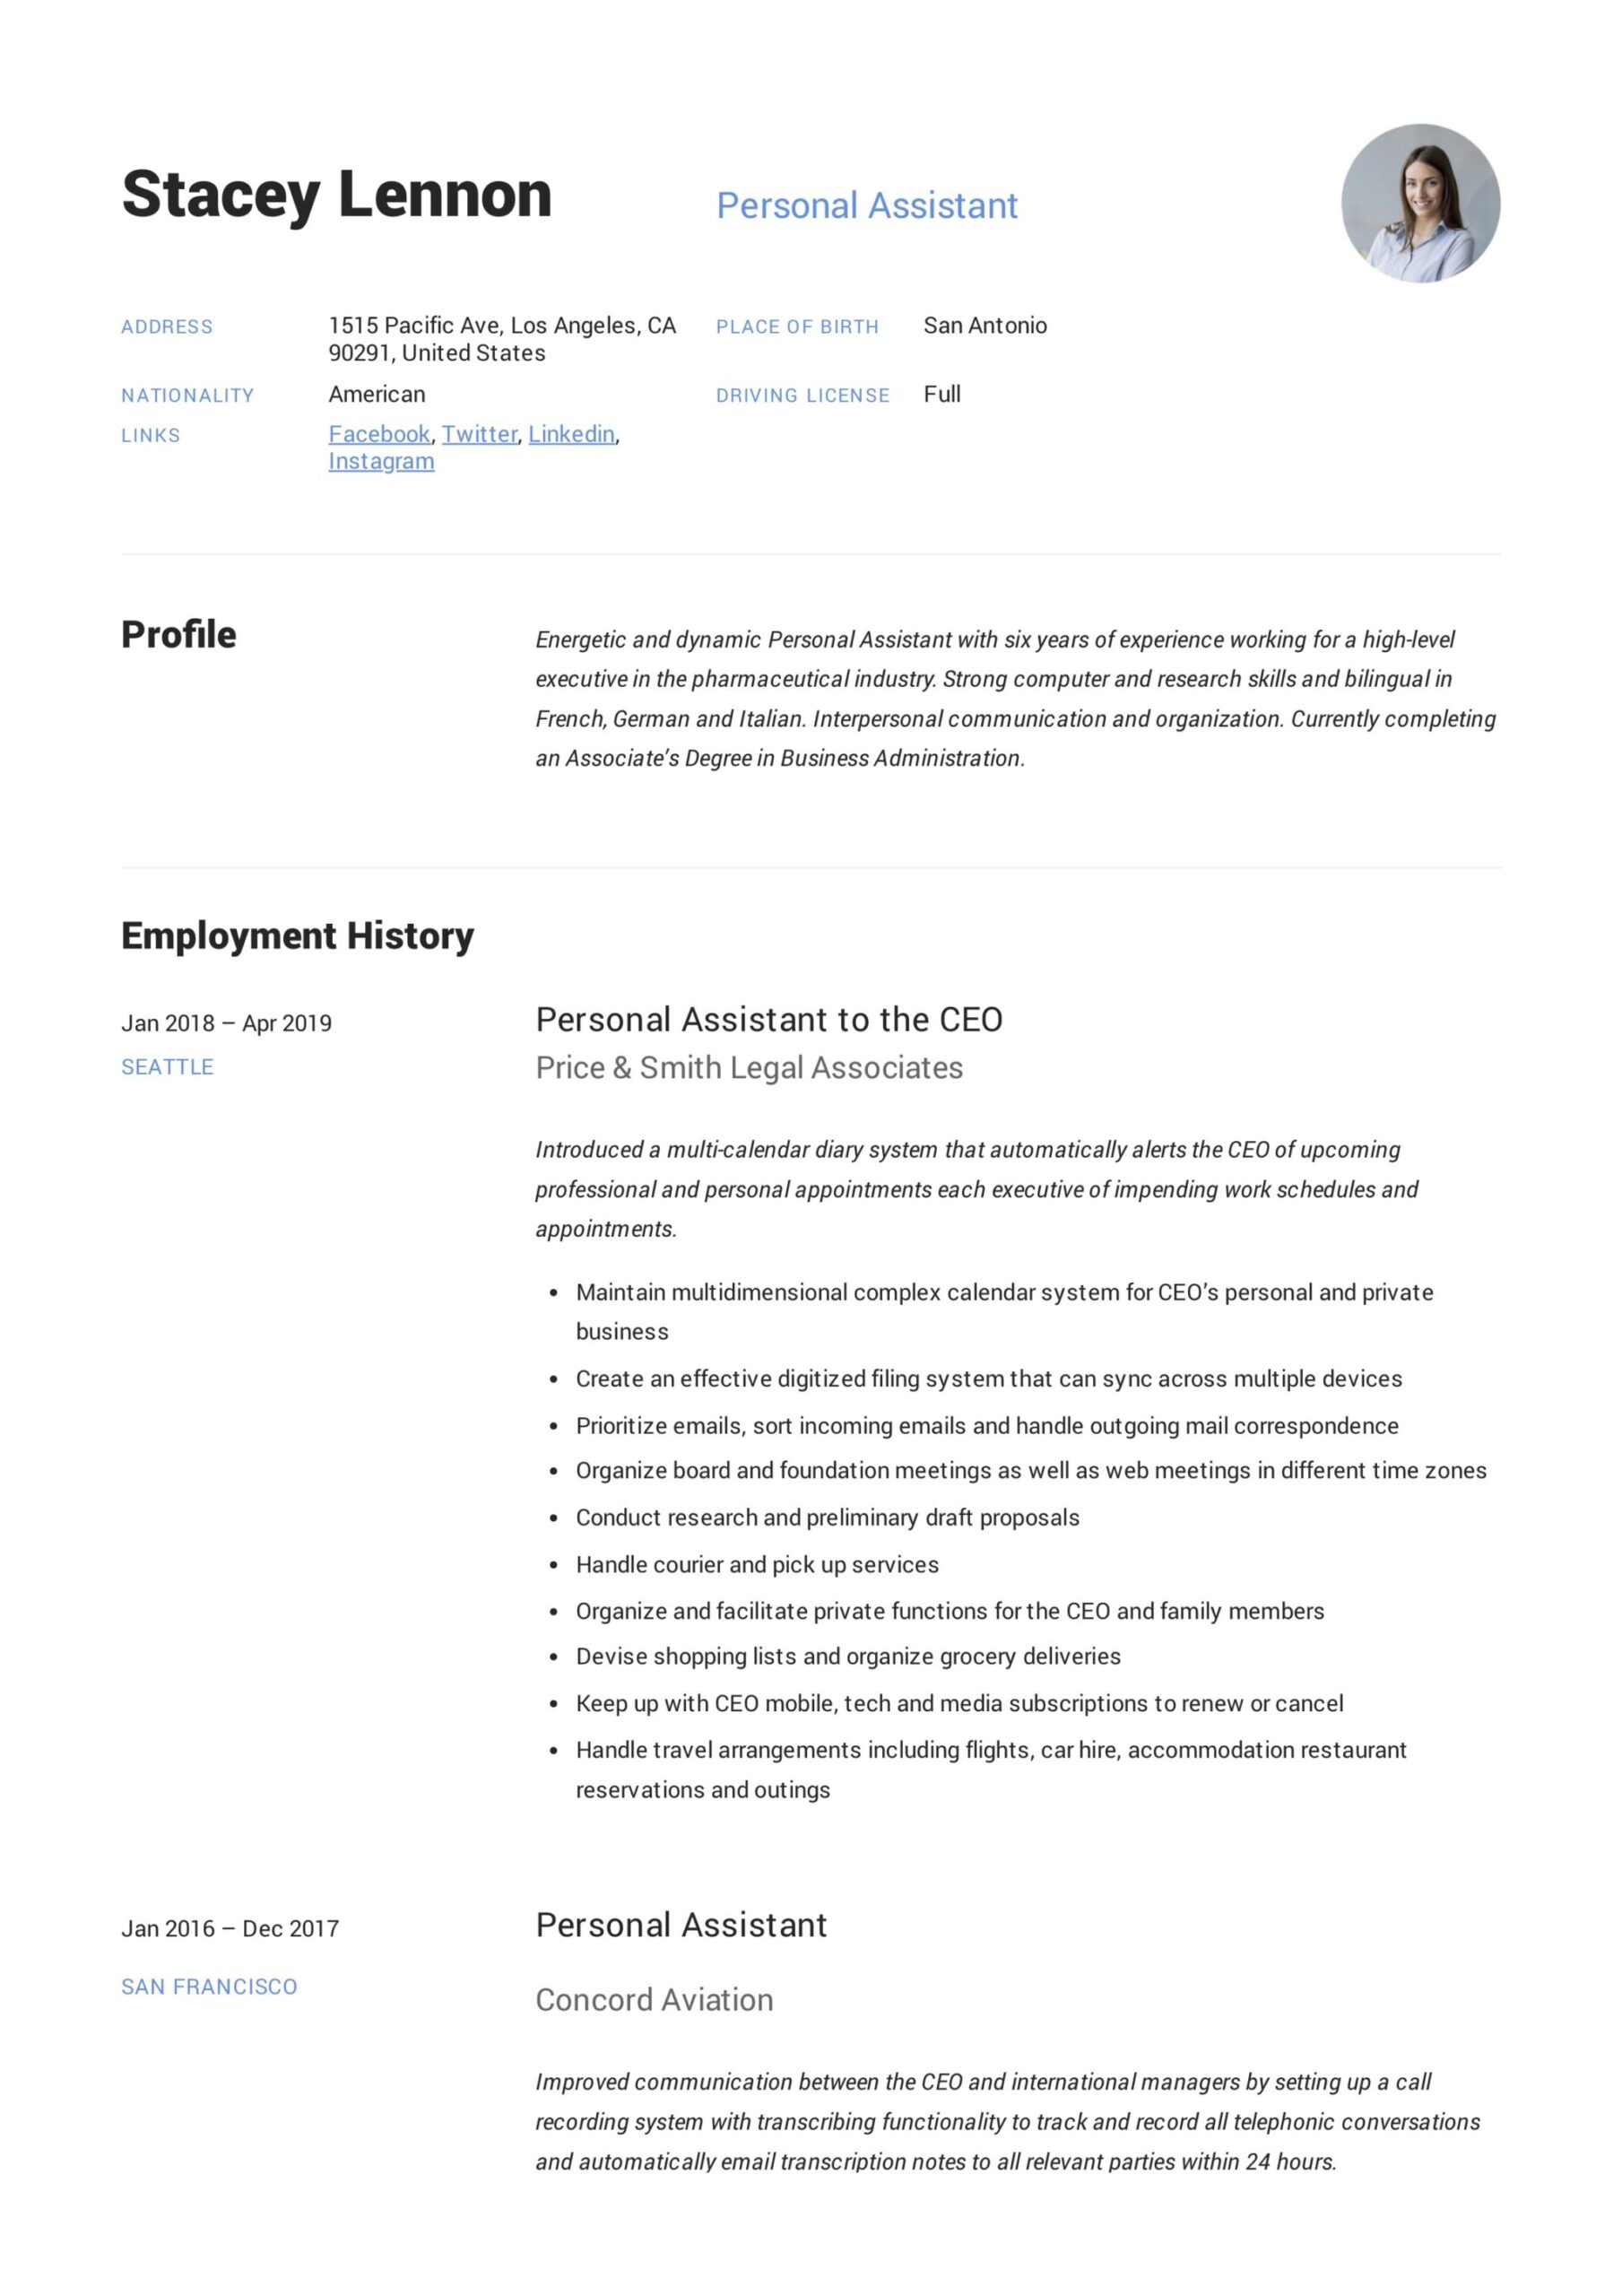 personal assistant resume writing guide templates pdf best esthetician spa electronic Resume Best Personal Assistant Resume